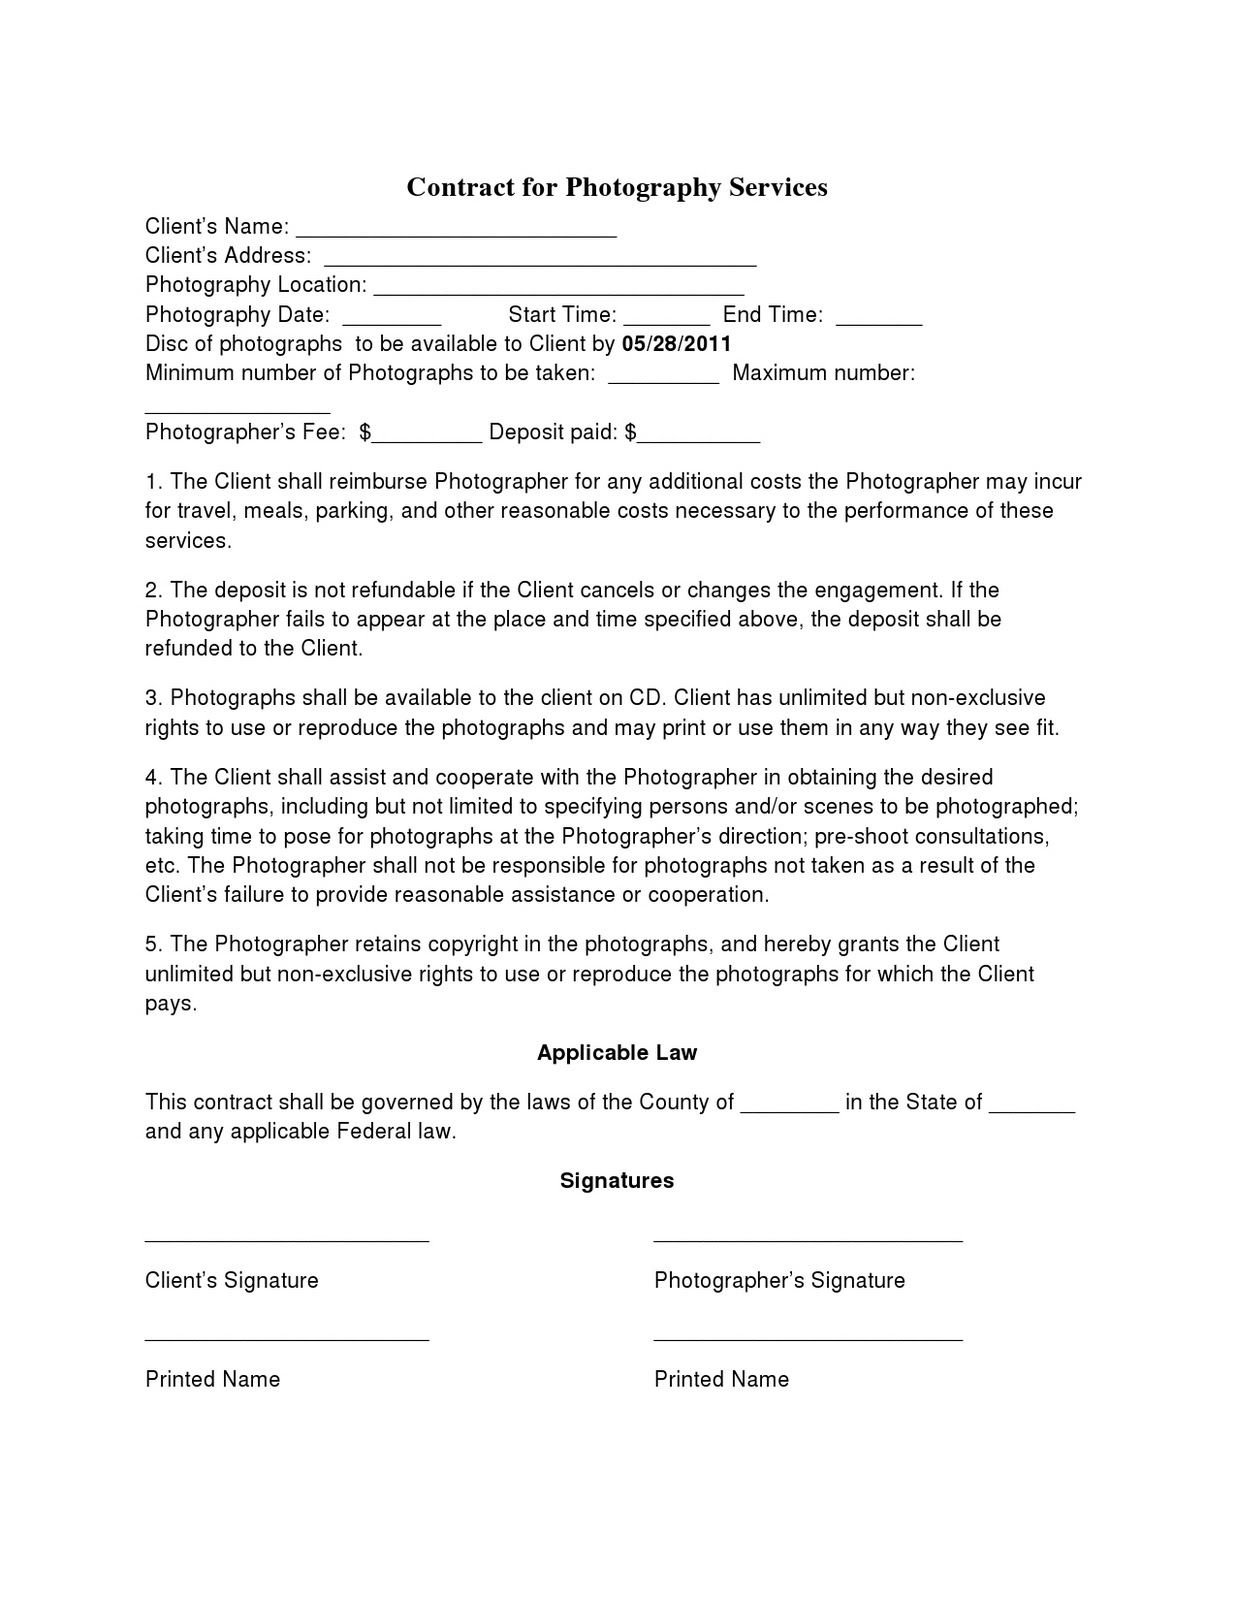 Attirant Basic Wedding Photography Contracts | Photography Contract Template